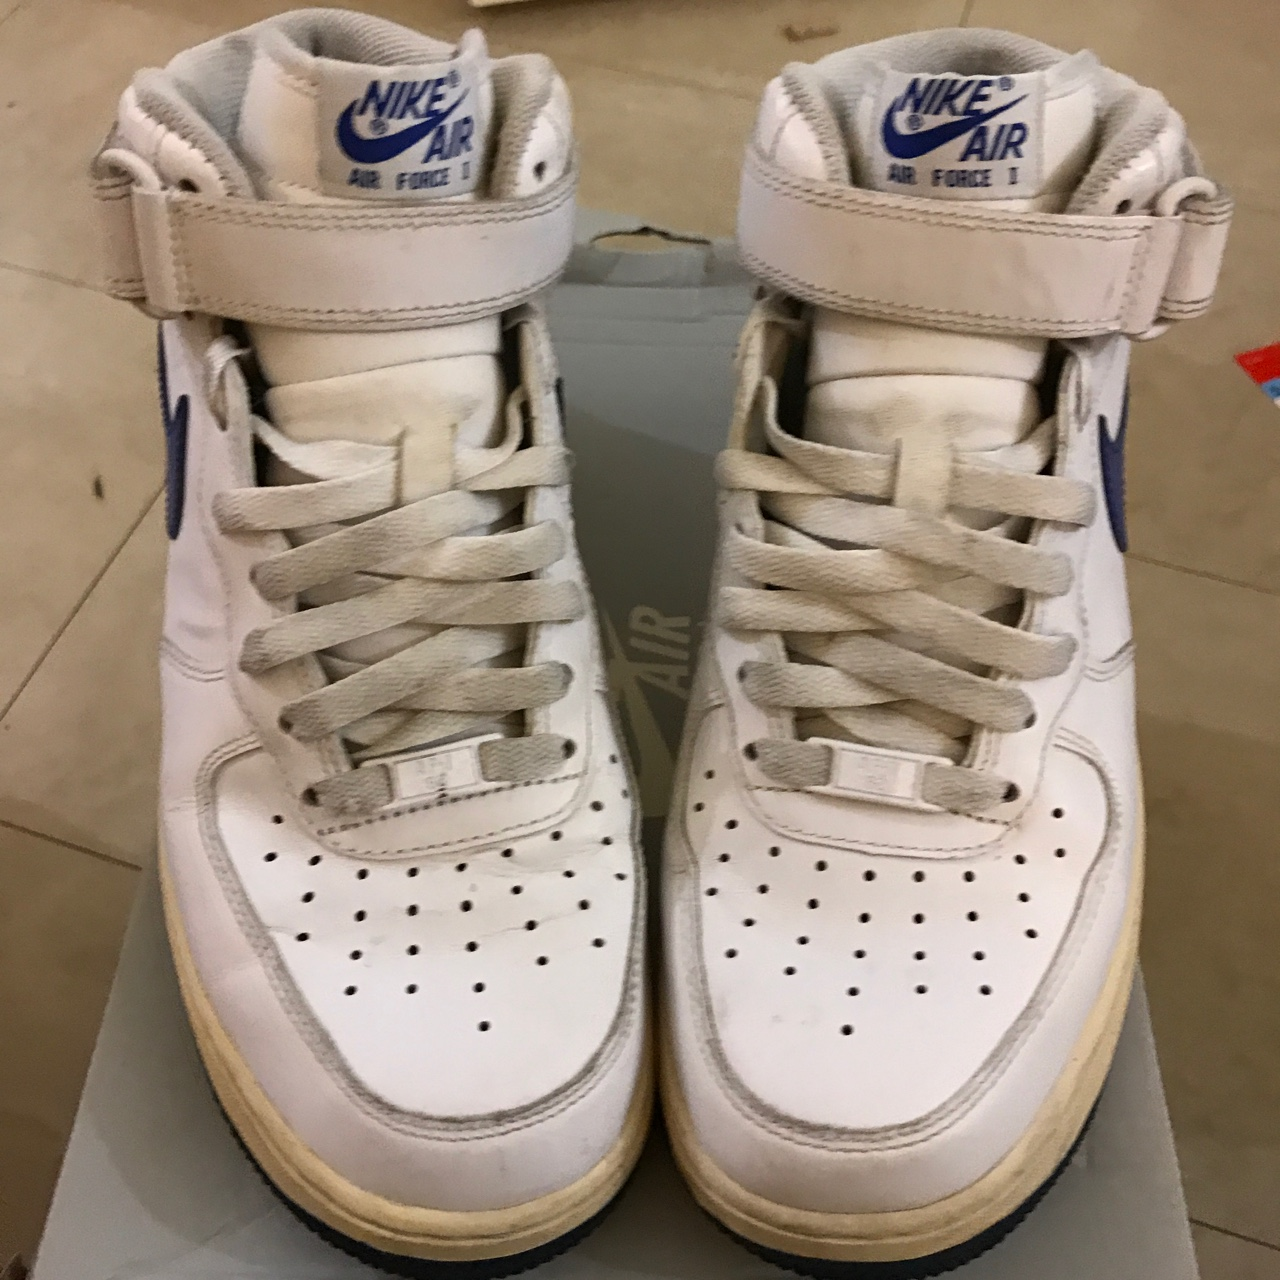 Nike Air Force 1 mid uk 7 us 8, white with the blue Depop